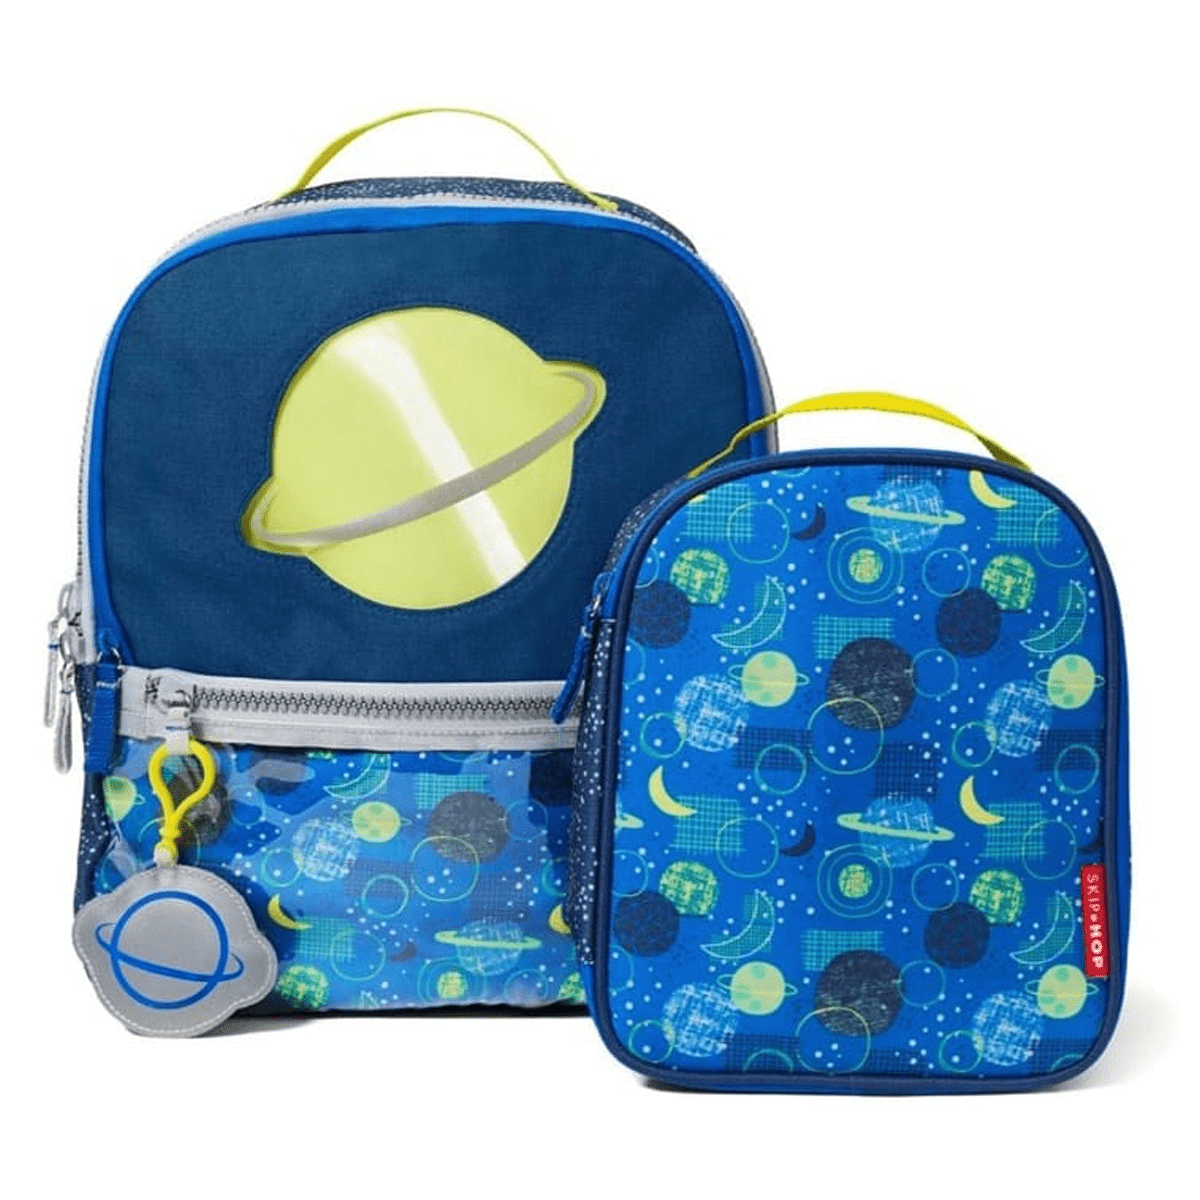 SkipHop Forget Me Not Backpack – Galaxy (29.2 x 35.5 cm)